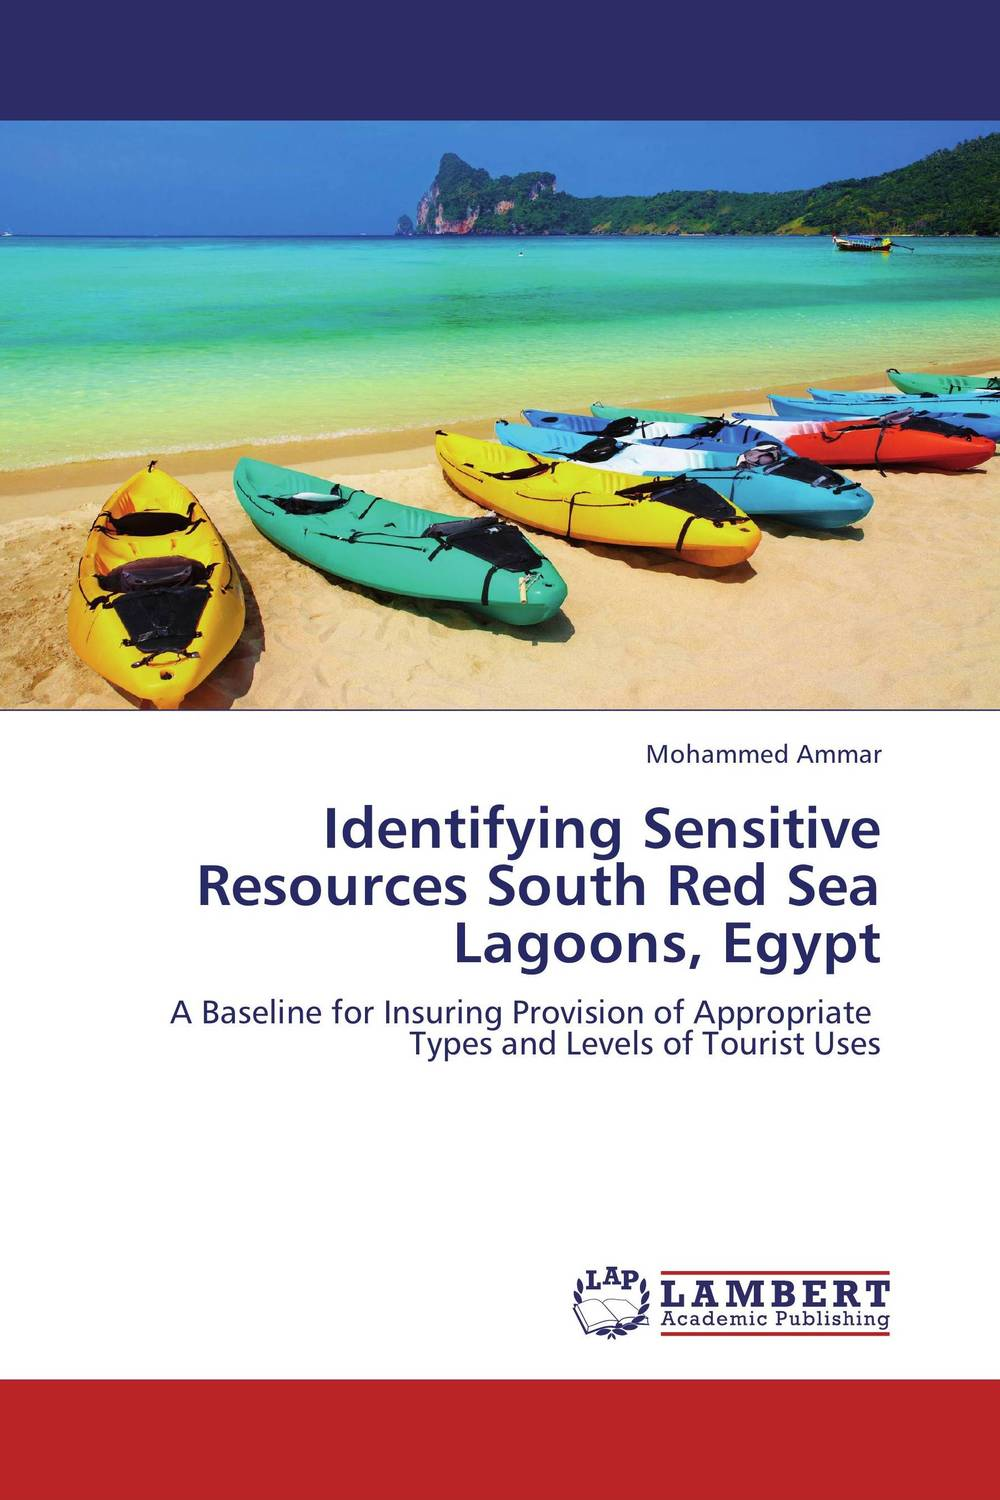 Identifying Sensitive Resources South Red Sea Lagoons, Egypt nutrient dynamics in a pristine subtropical lagoon estuarine system